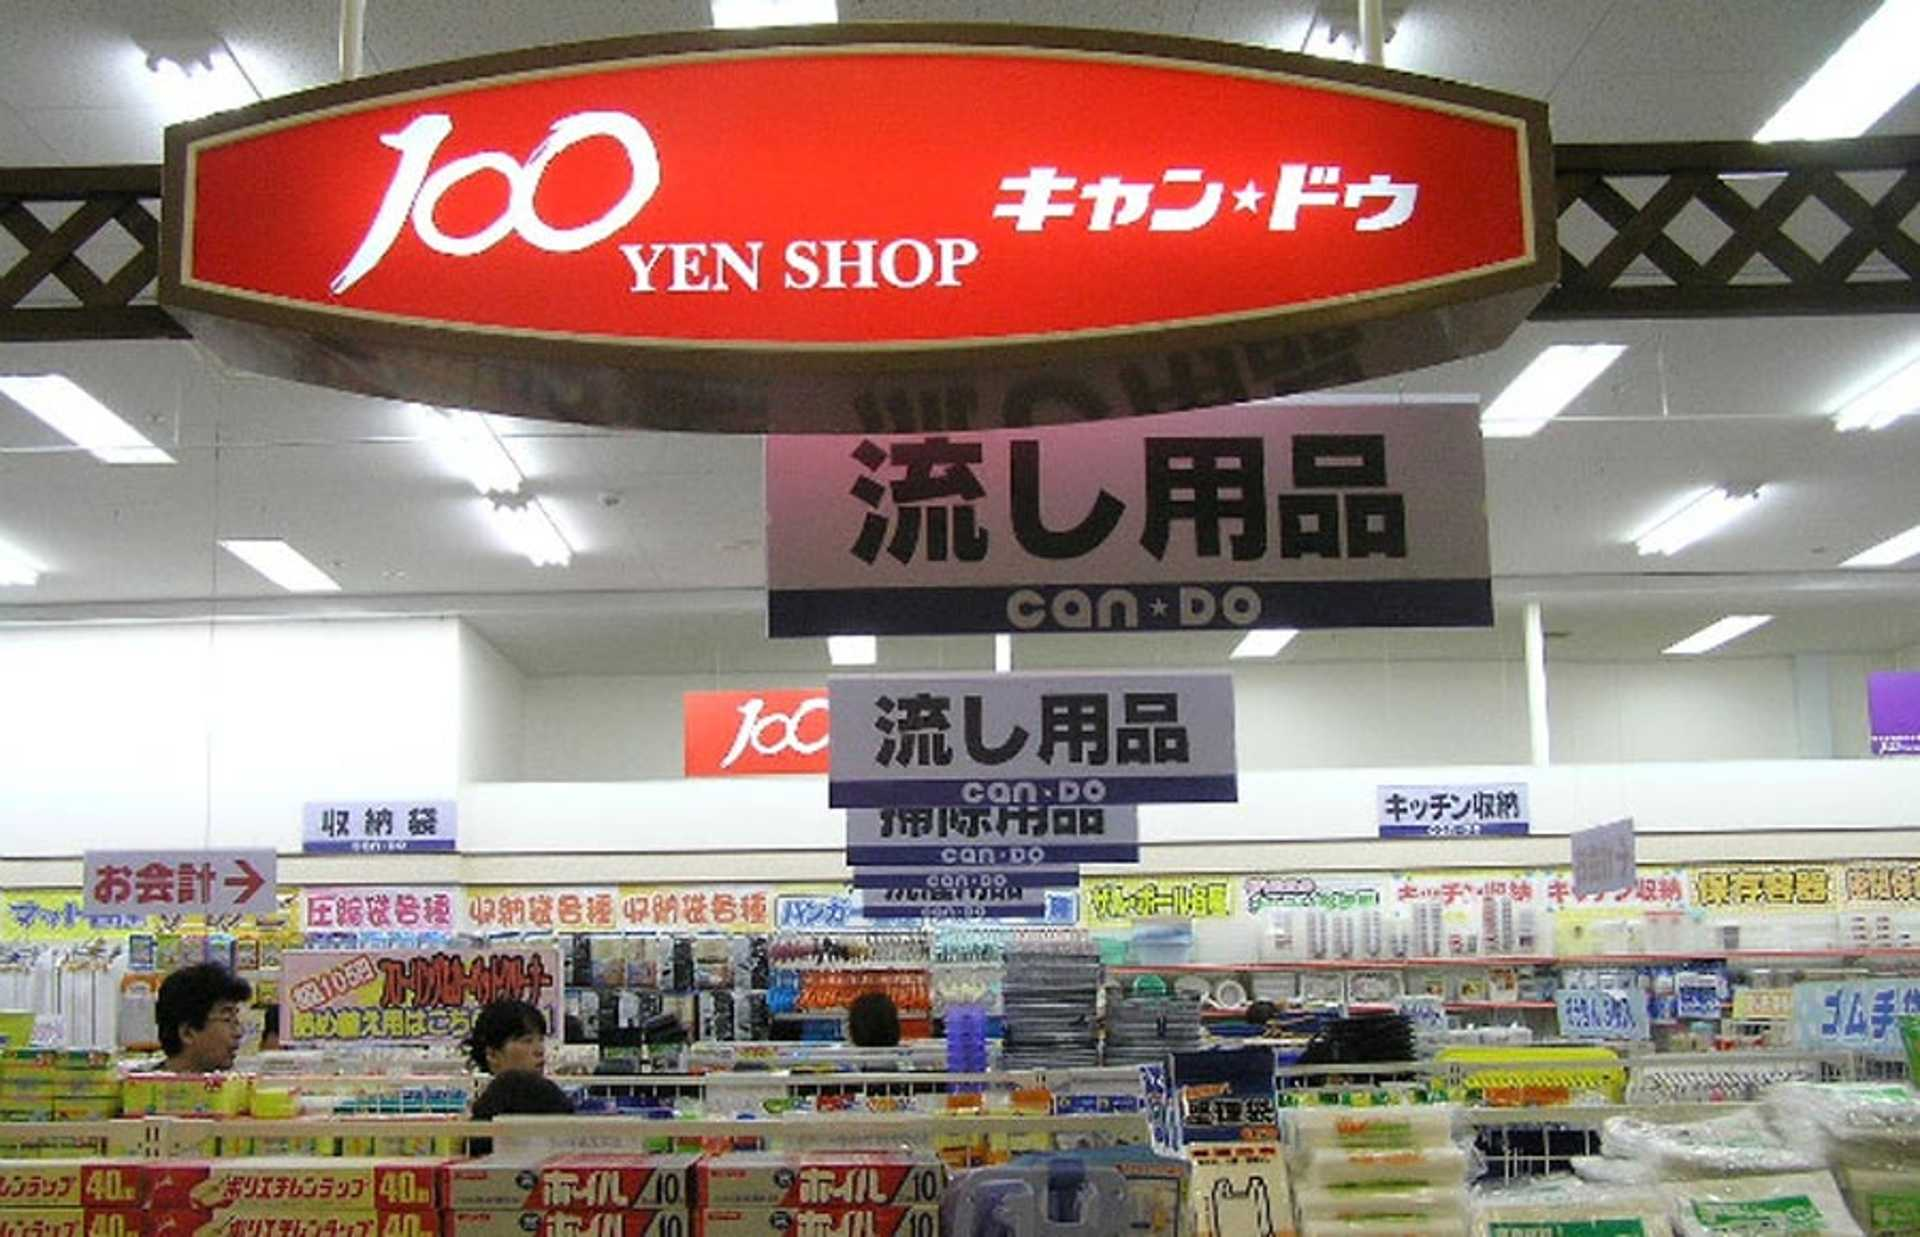 These 100-yen shops can be found all over Tokyo, especially in the shopping districts!